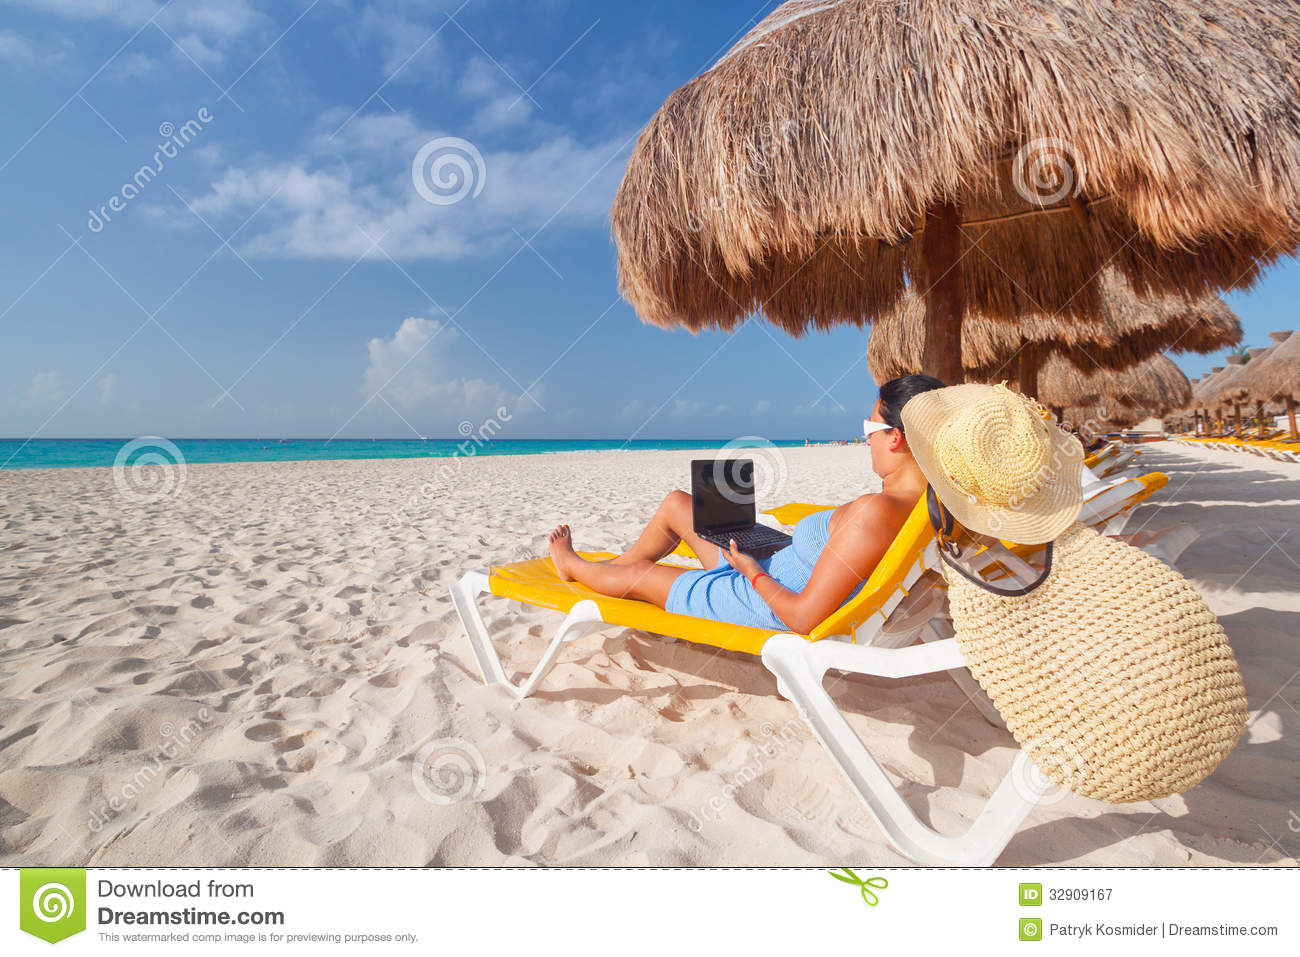 Caribbean Relaxation: Woman With Laptop Relaxing On The Deckchair Stock Image